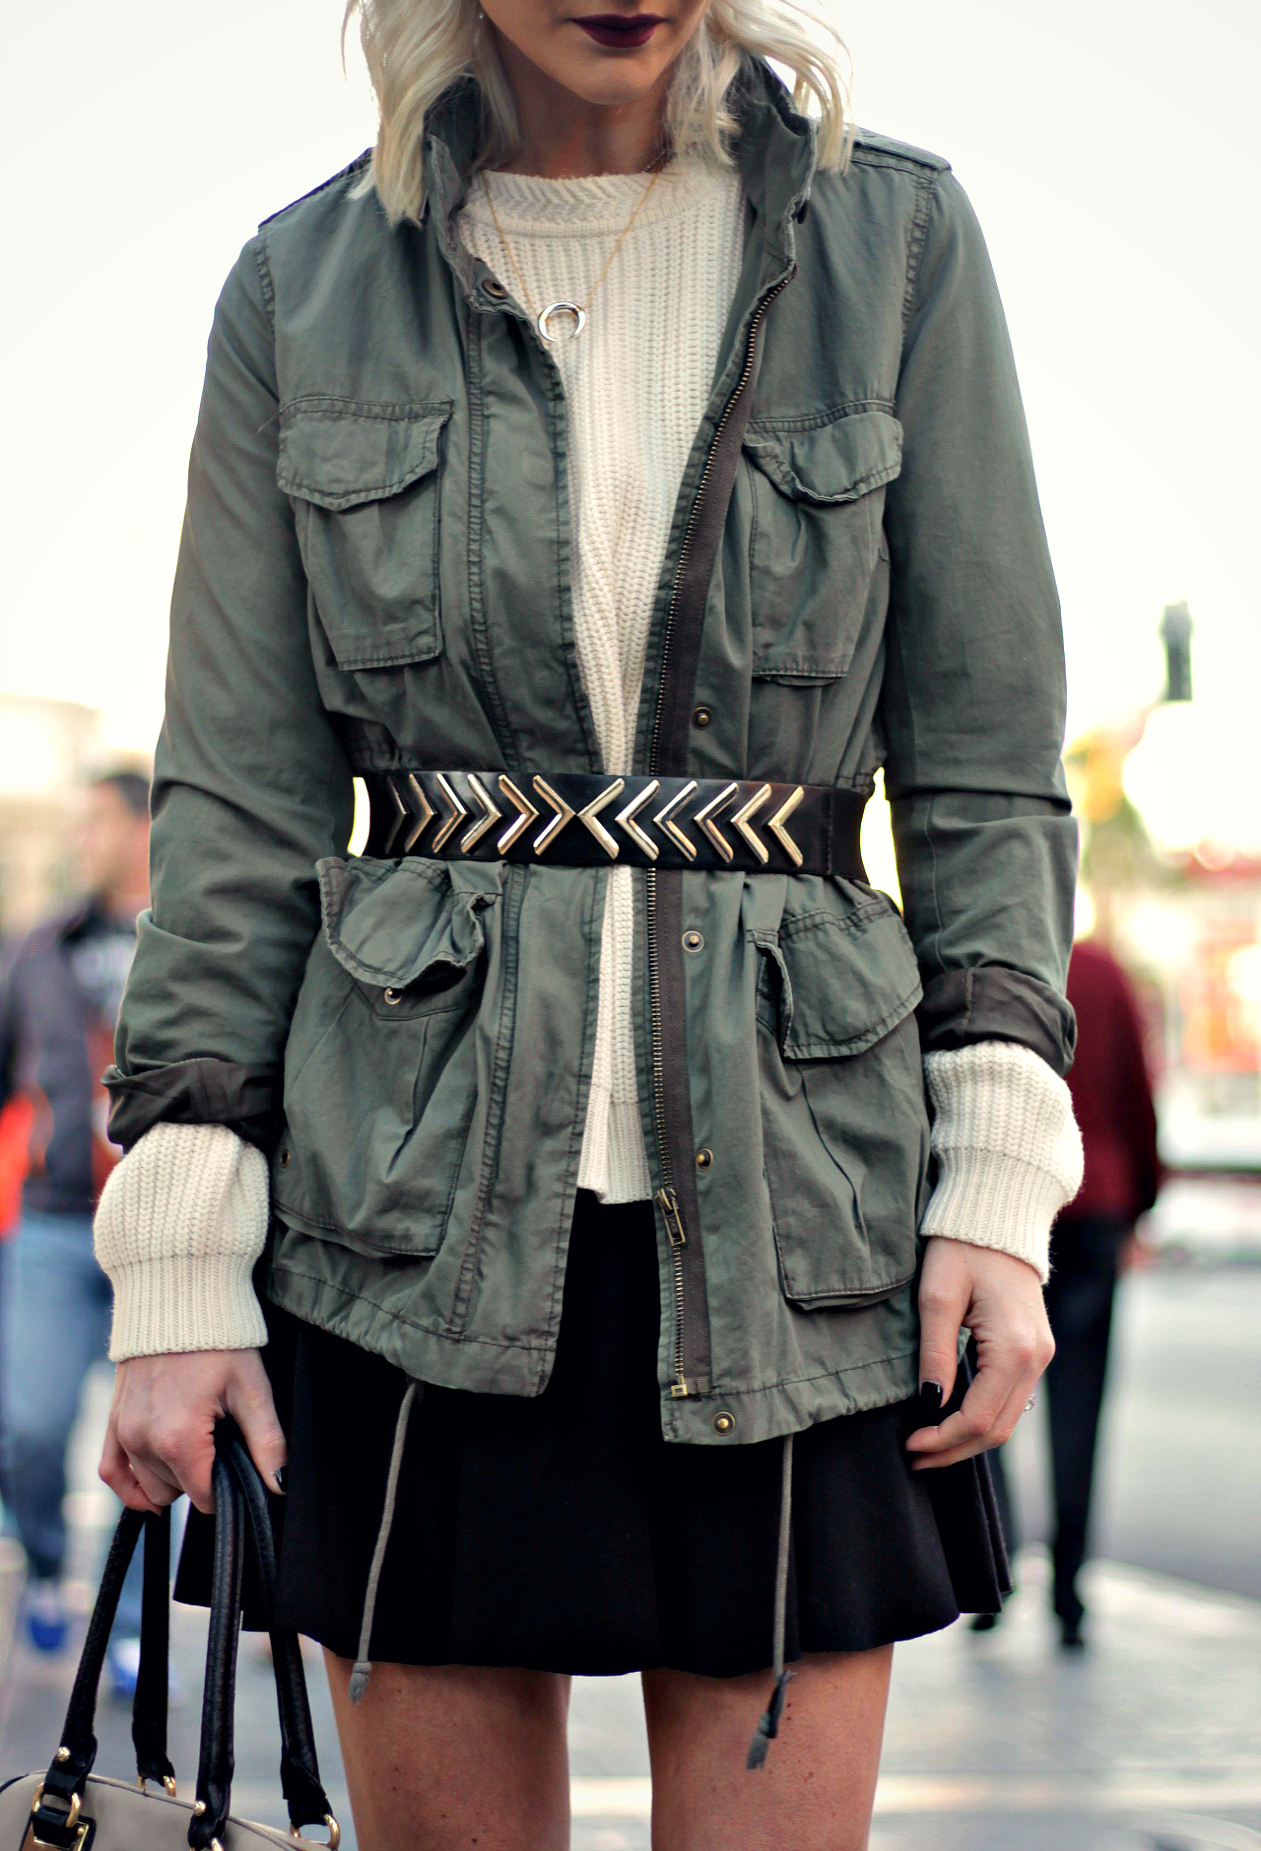 WINTER OUTFIT INSPO: BELT YOUR OUTERWEAR